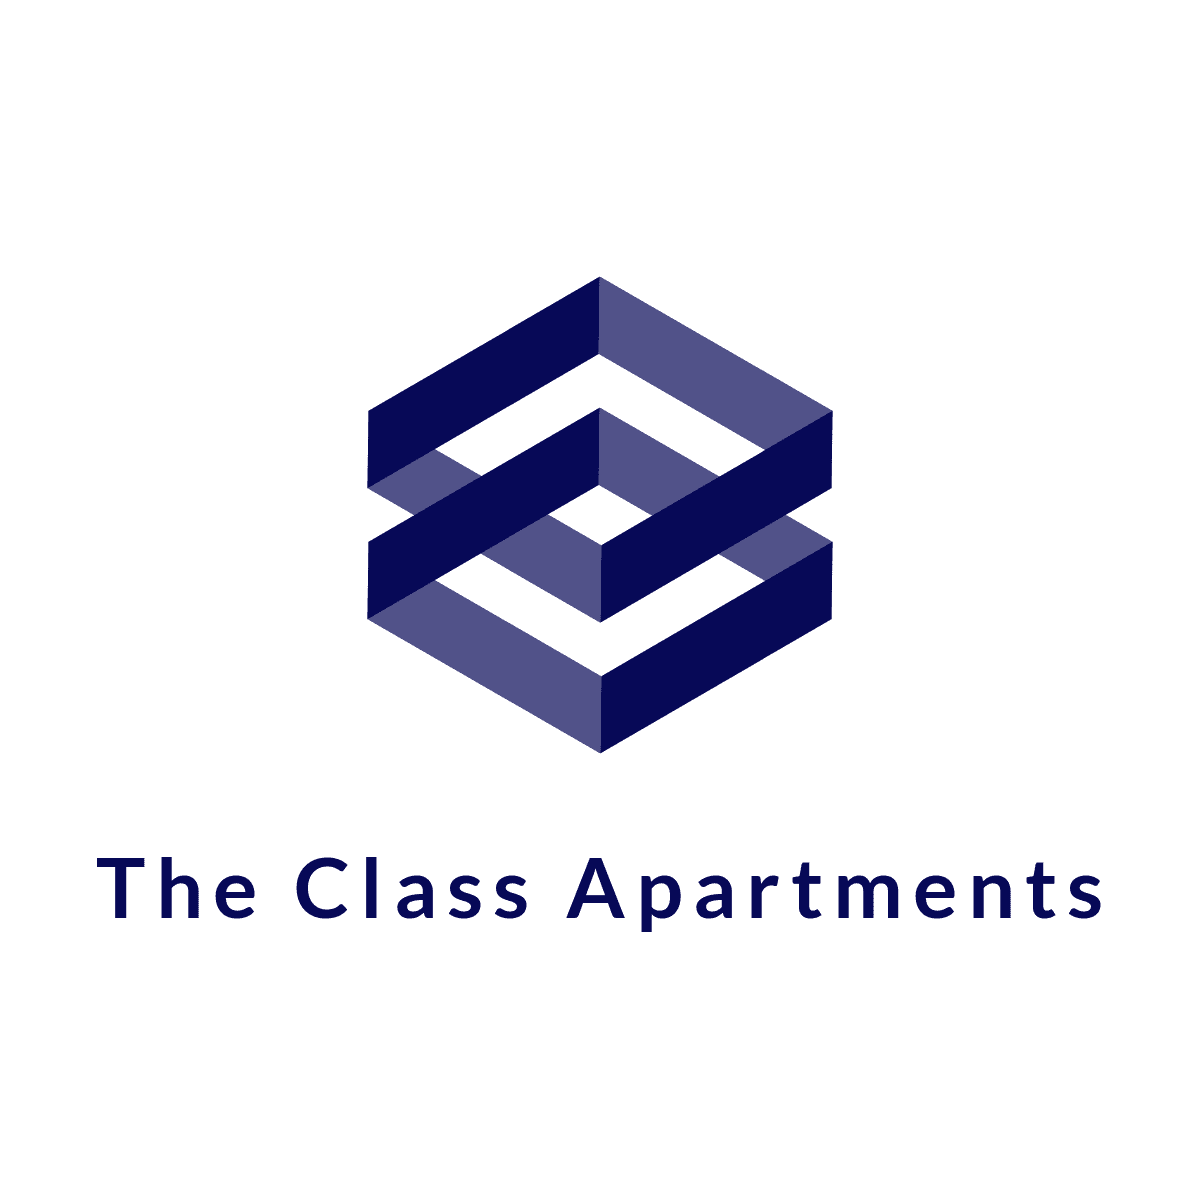 The Class Apartments